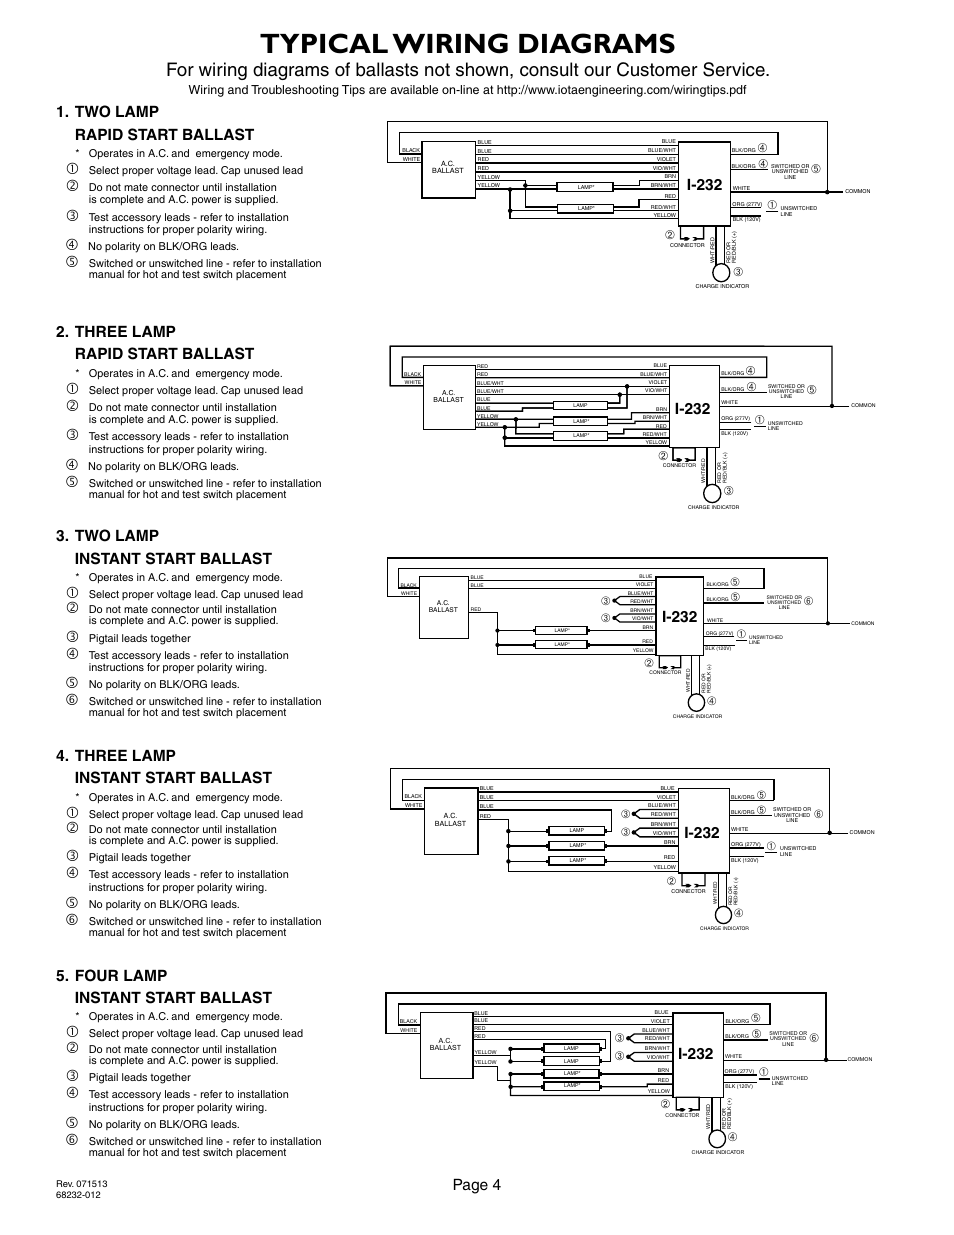 typical wiring diagrams page 4 i 232 iota i 232 user manual rh manualsdir  com Basic